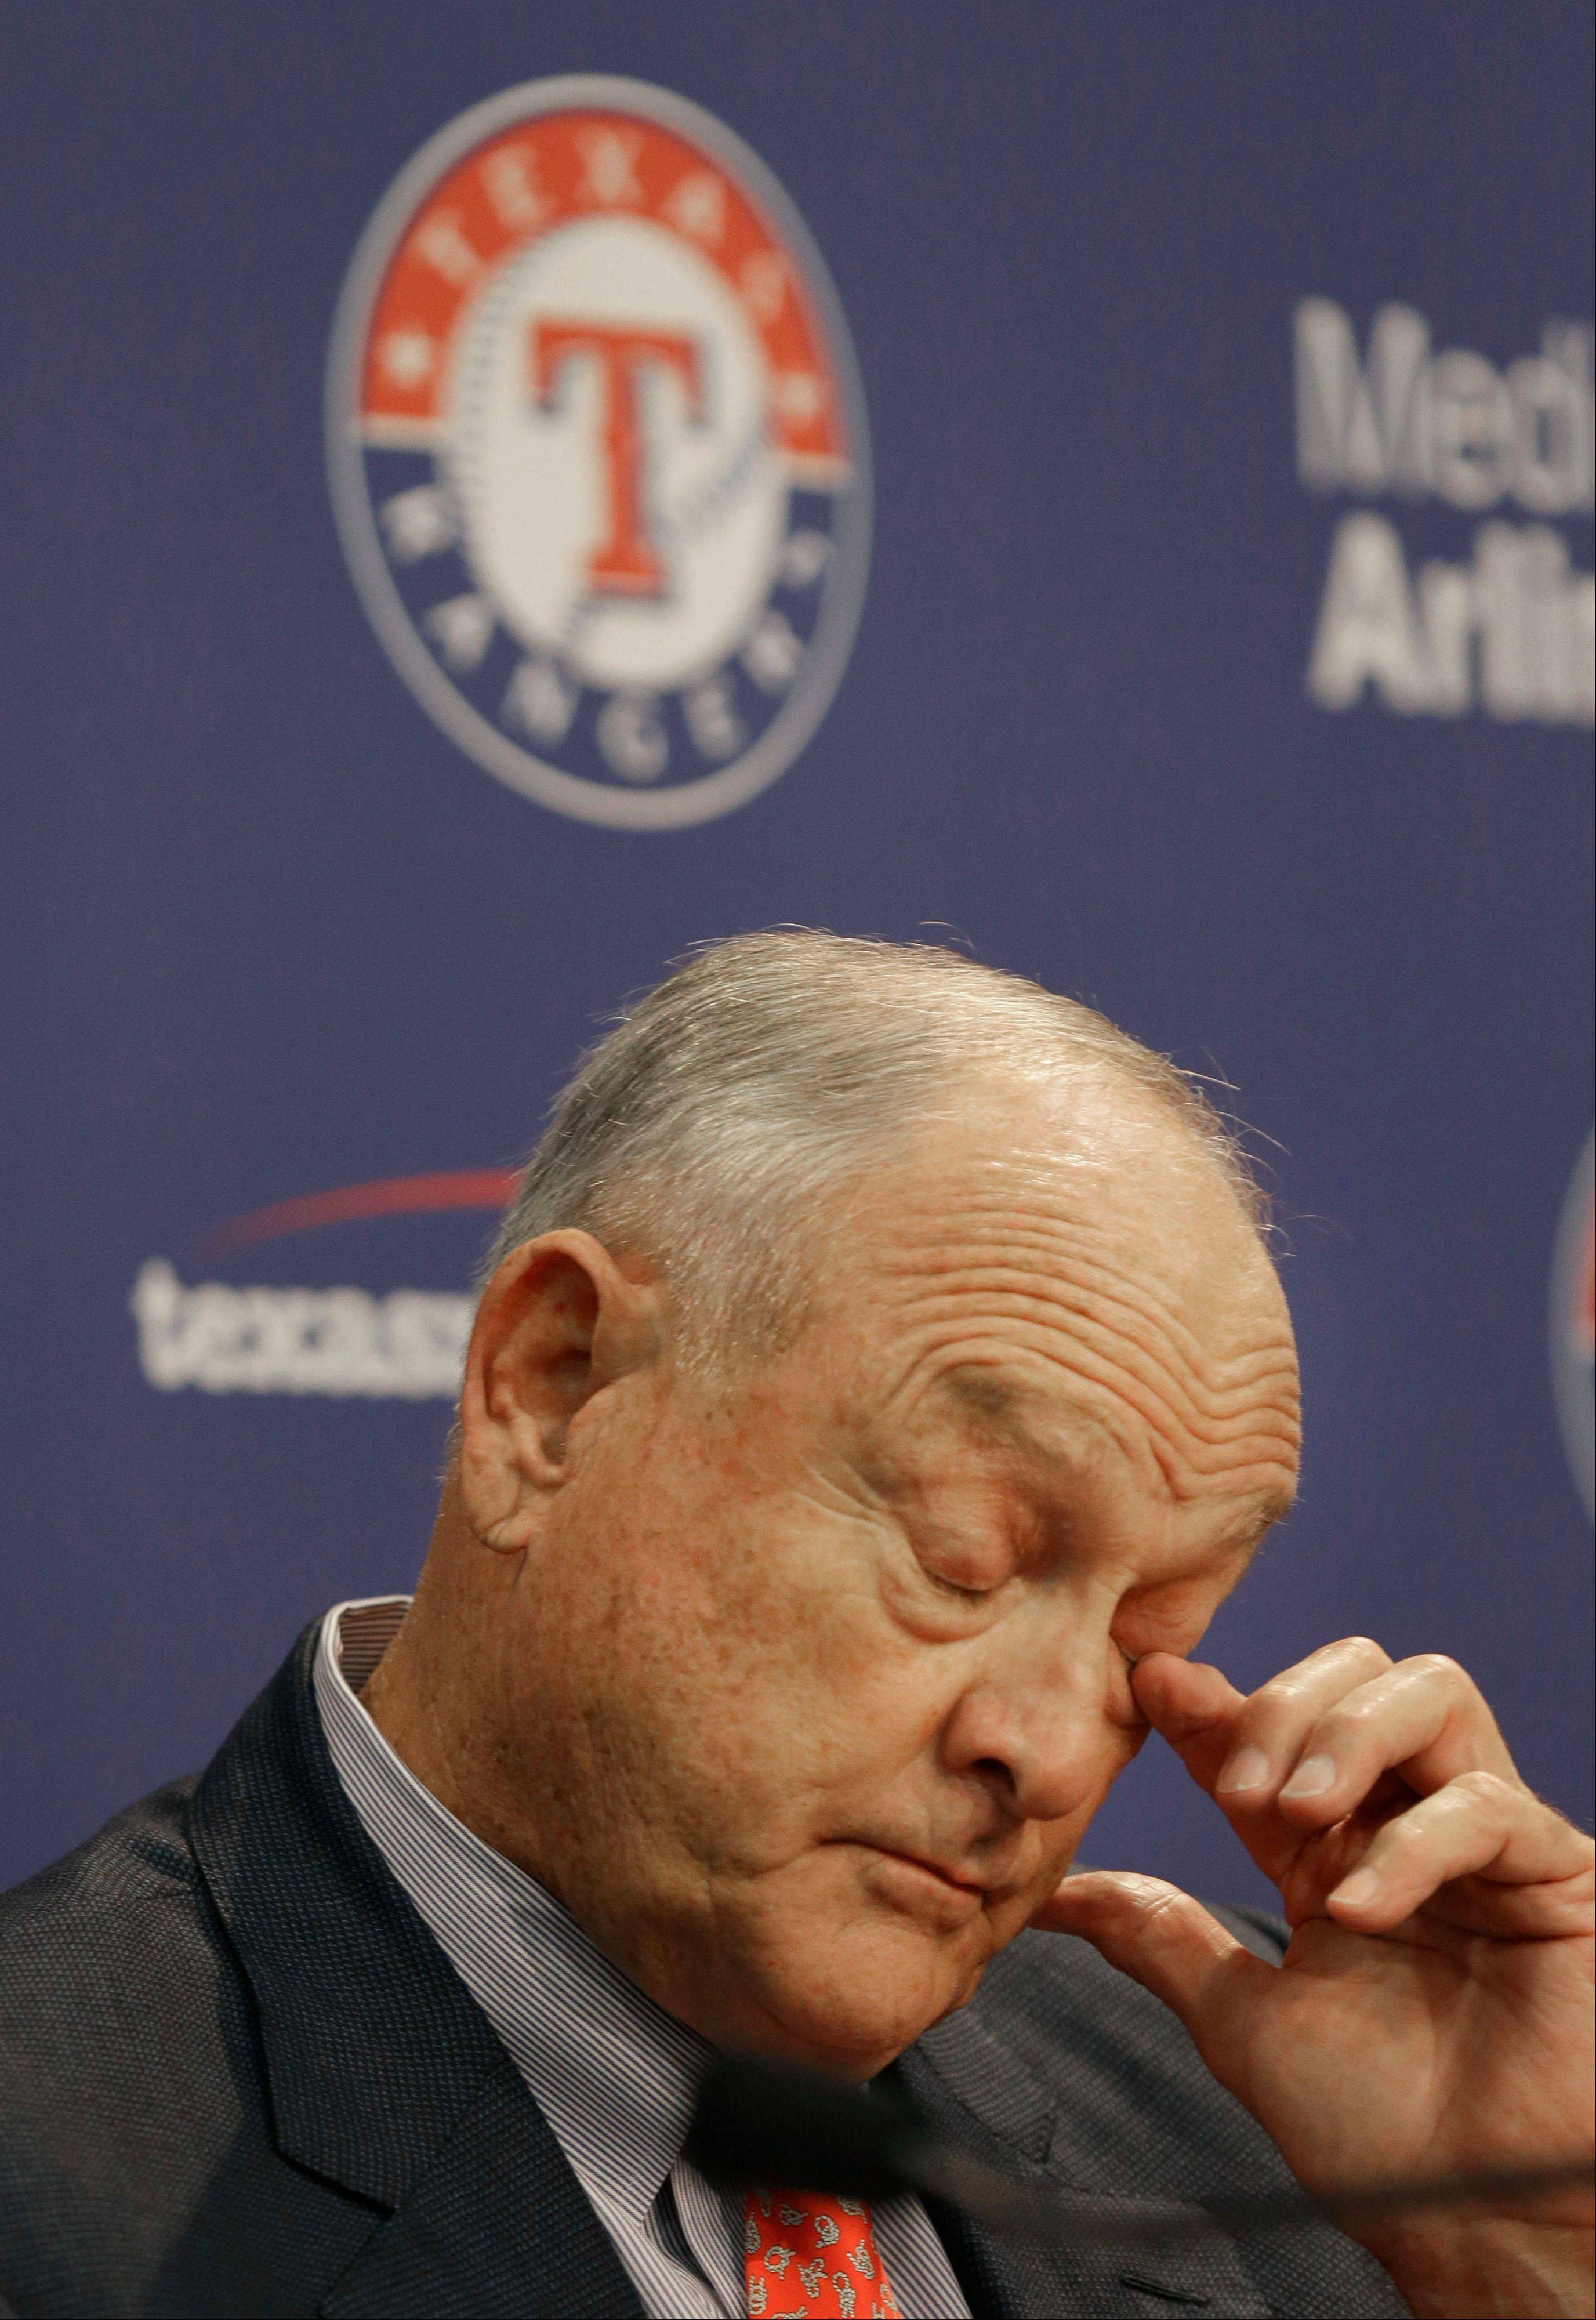 Texas Rangers CEO and President Nolan Ryan wipes his eye during a news conference announcing his retirement from the ballclub Thursday, Oct. 17, 2013 in Arlington, Texas. Ryan will step down at the end of this month.